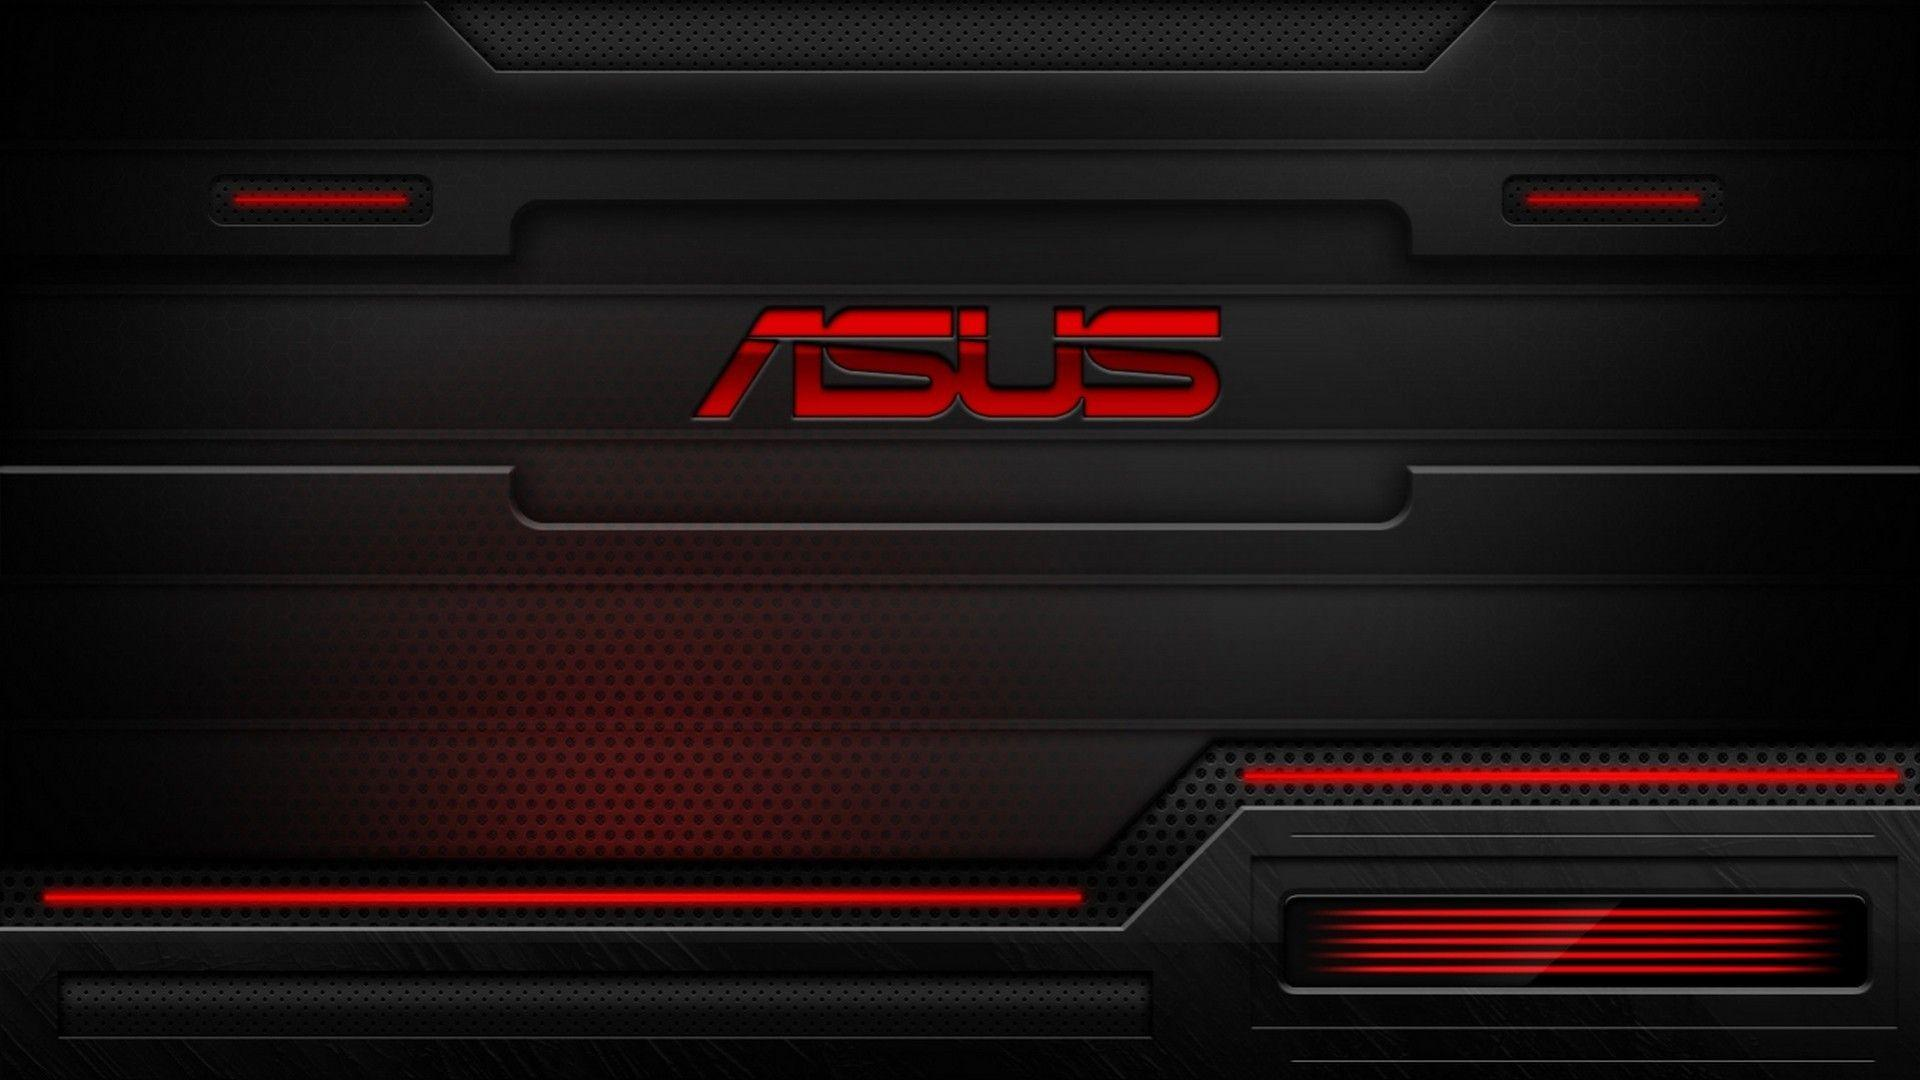 Asus Wallpapers Hd Wallpaper Cave